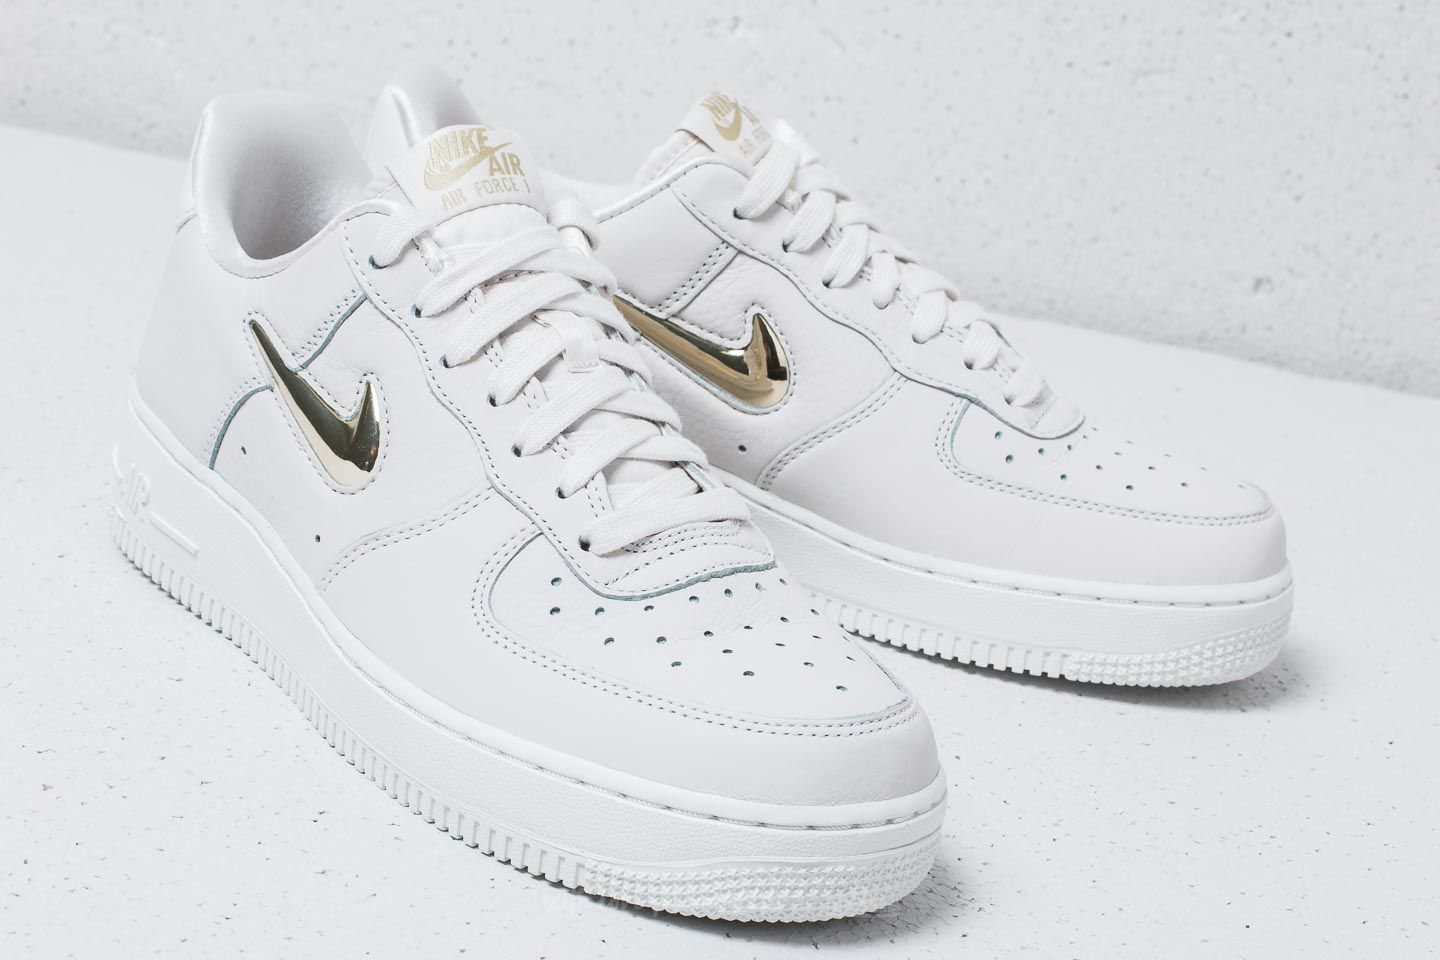 Nike Wmns Air Force 1´07 Premium LX Phantom Mtlc Gold Star | Footshop